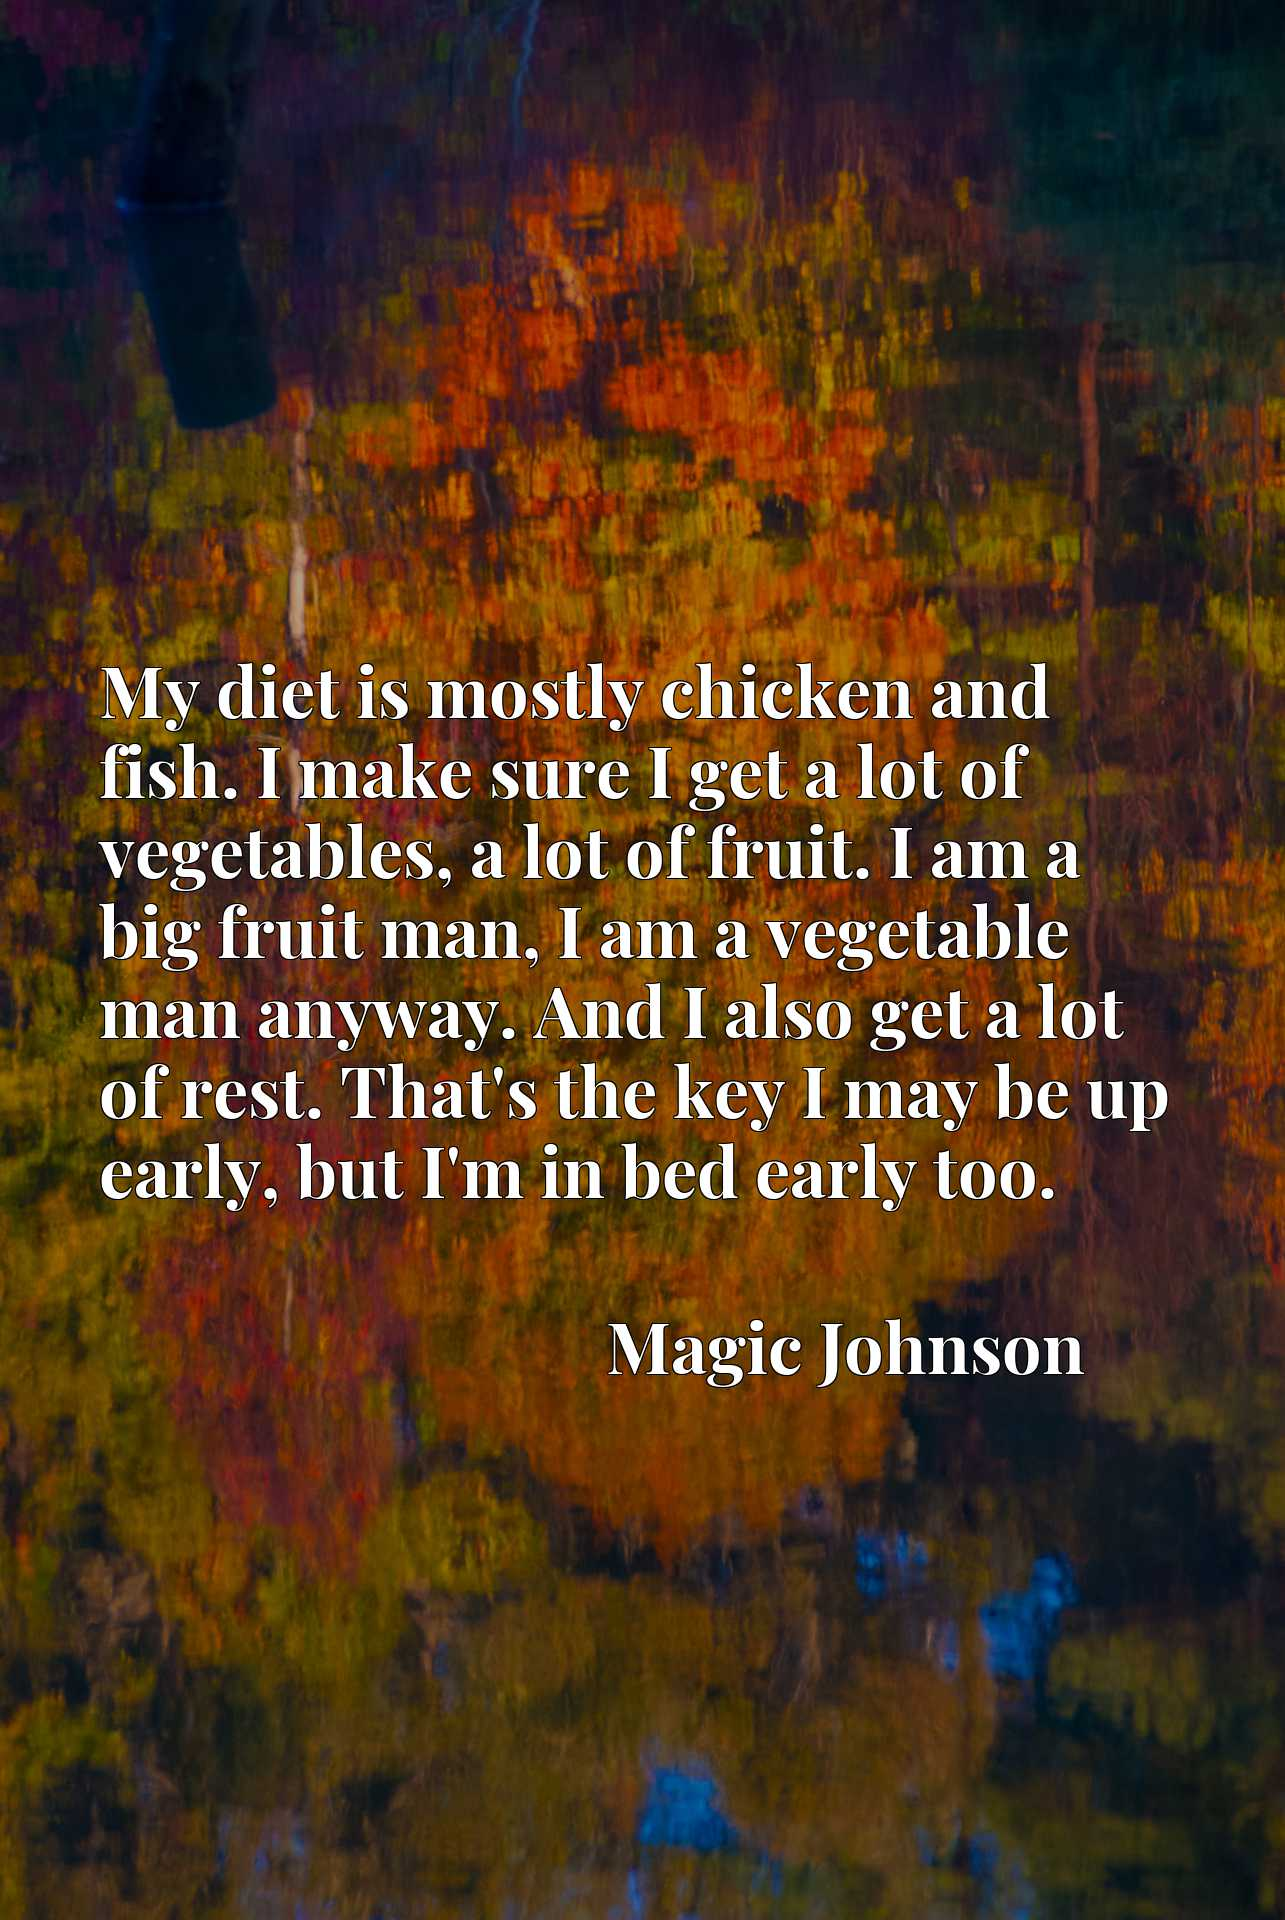 My diet is mostly chicken and fish. I make sure I get a lot of vegetables, a lot of fruit. I am a big fruit man, I am a vegetable man anyway. And I also get a lot of rest. That's the key I may be up early, but I'm in bed early too.